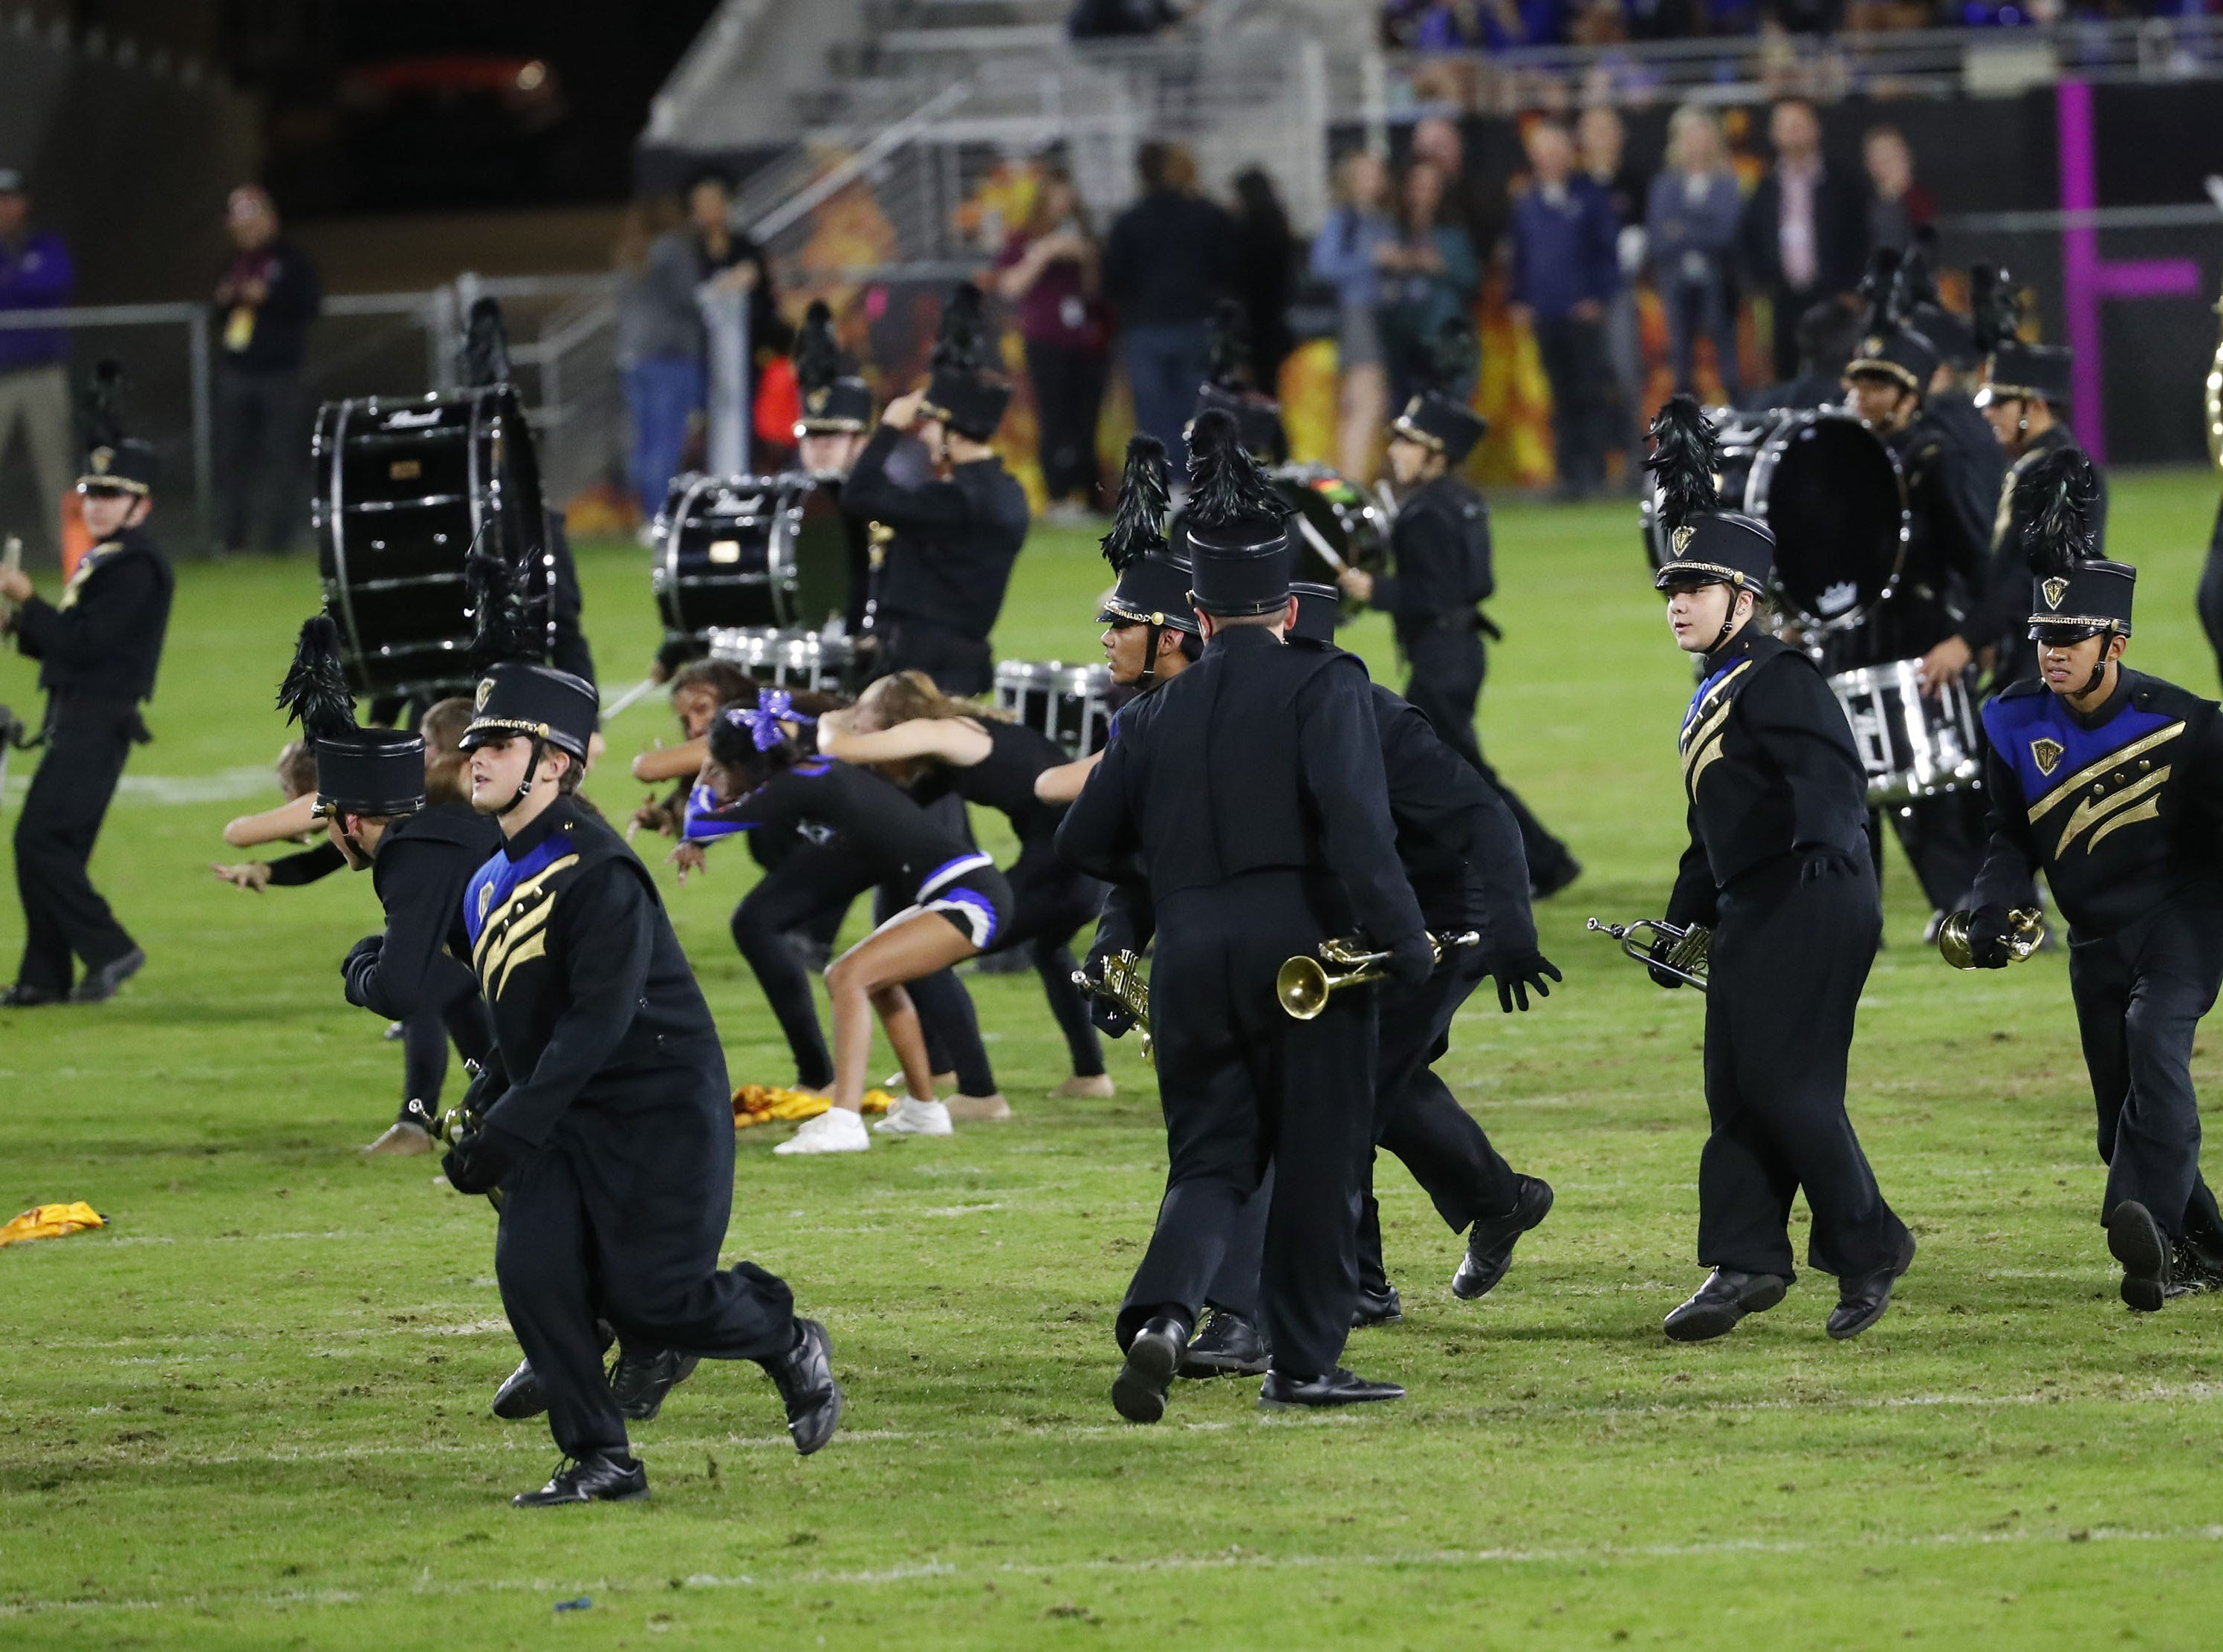 Chandler band performs during the 6A state football championship against Perry at Sun Devil Stadium December 1, 2018. #azhsfb